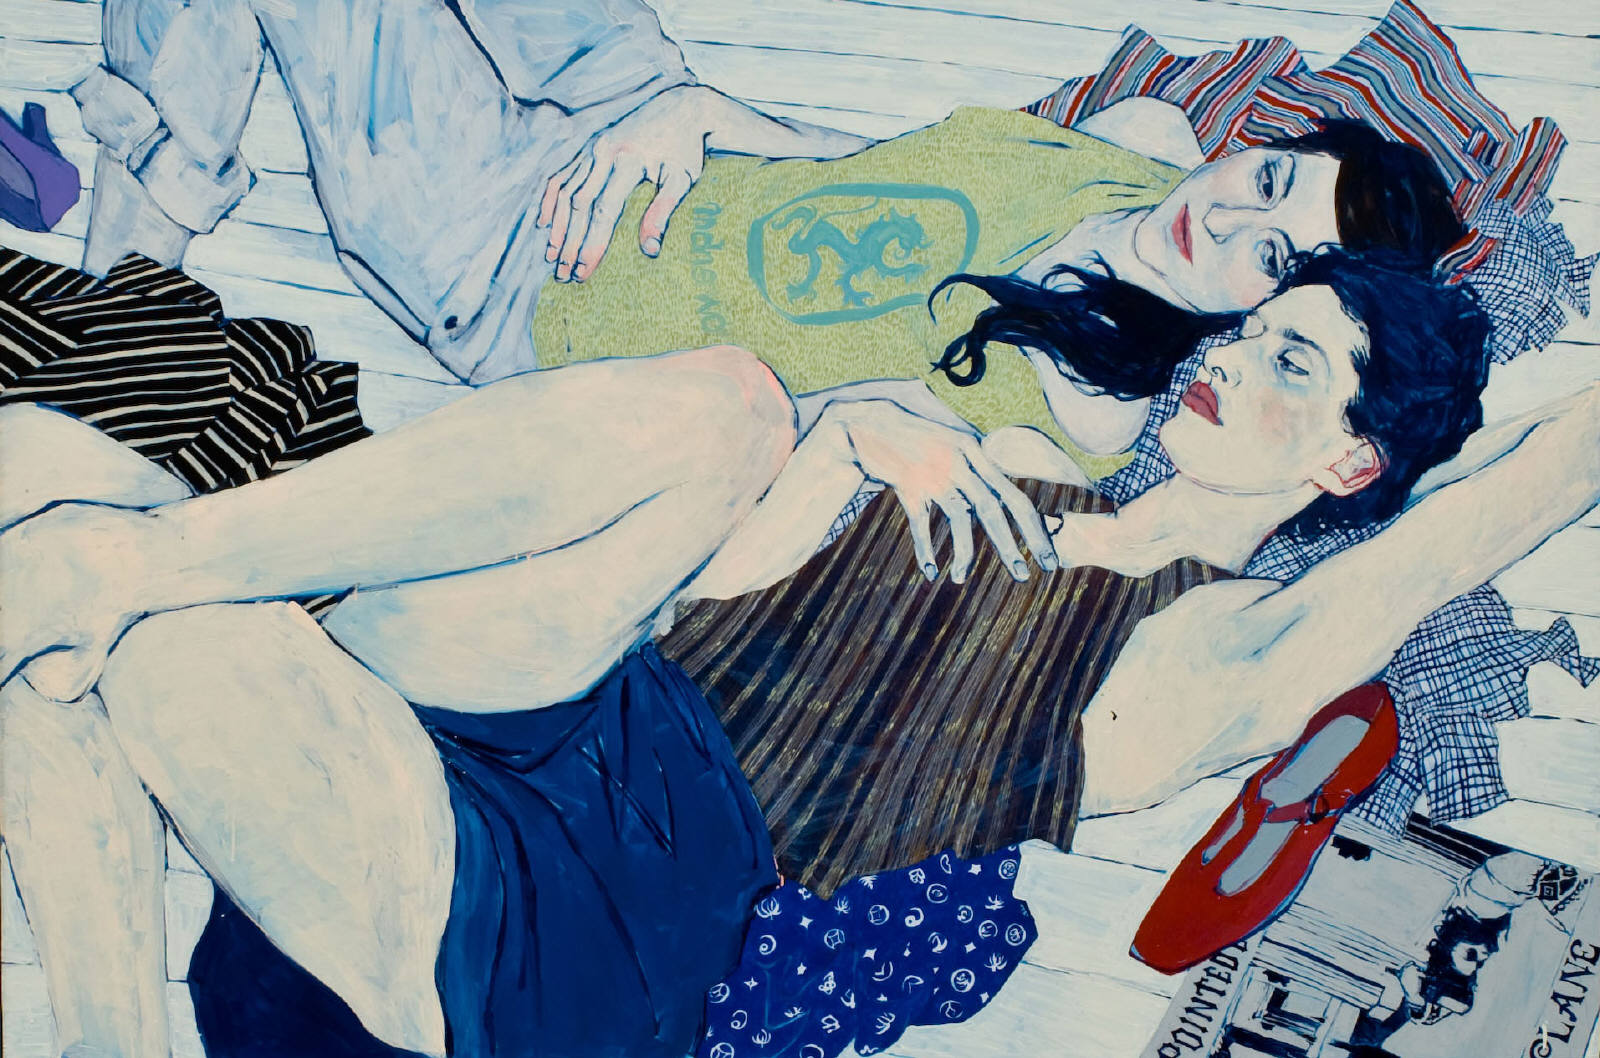 Clothes Swap Brookyn - Painting by Hope Gangloff